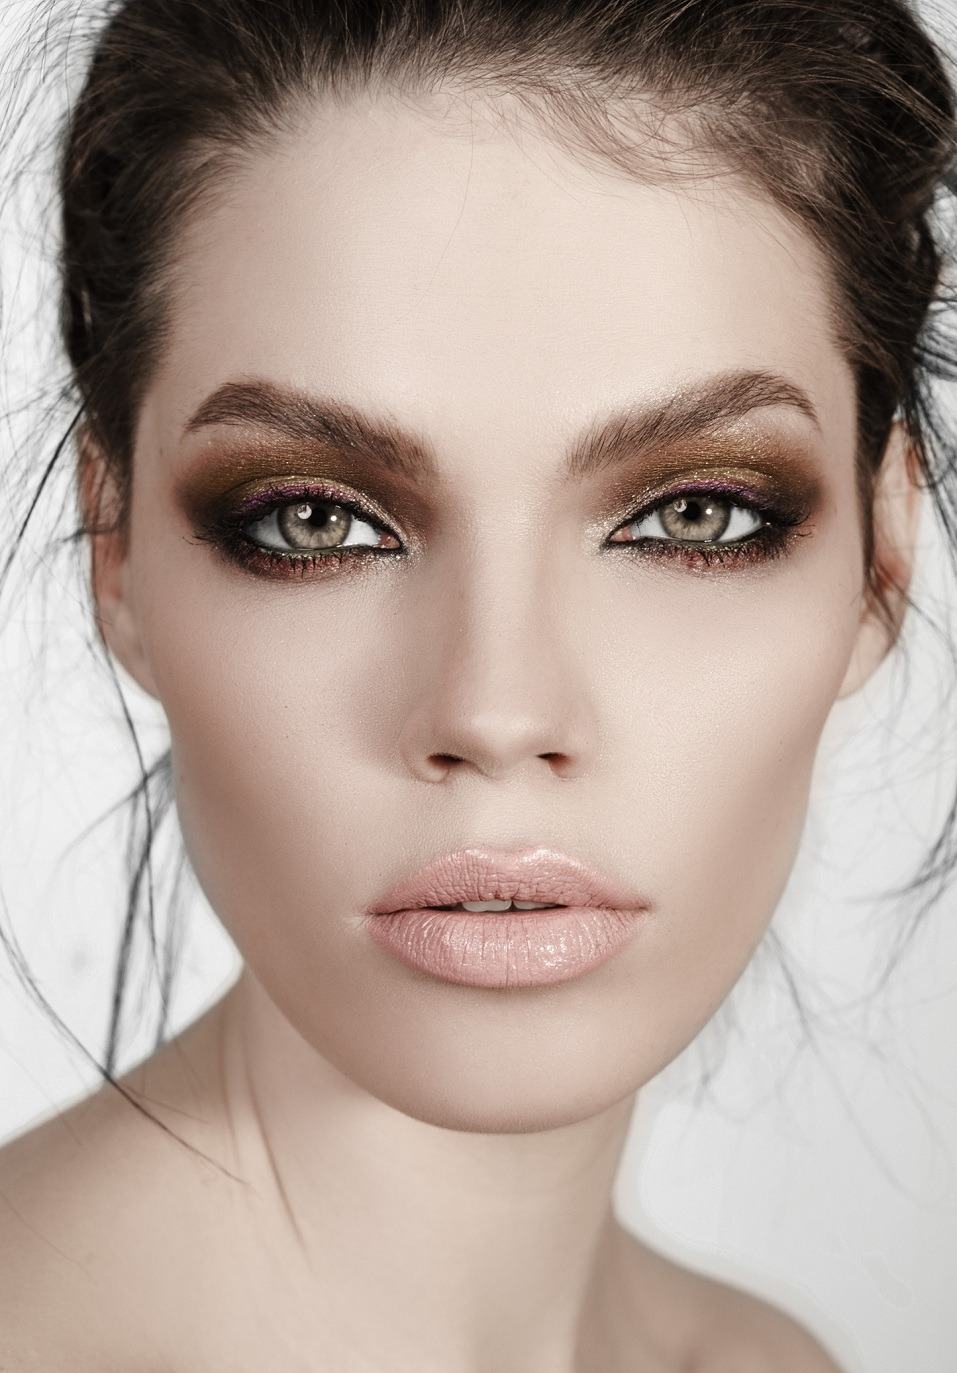 green eyed brunette with beautiful high-fashion make-up